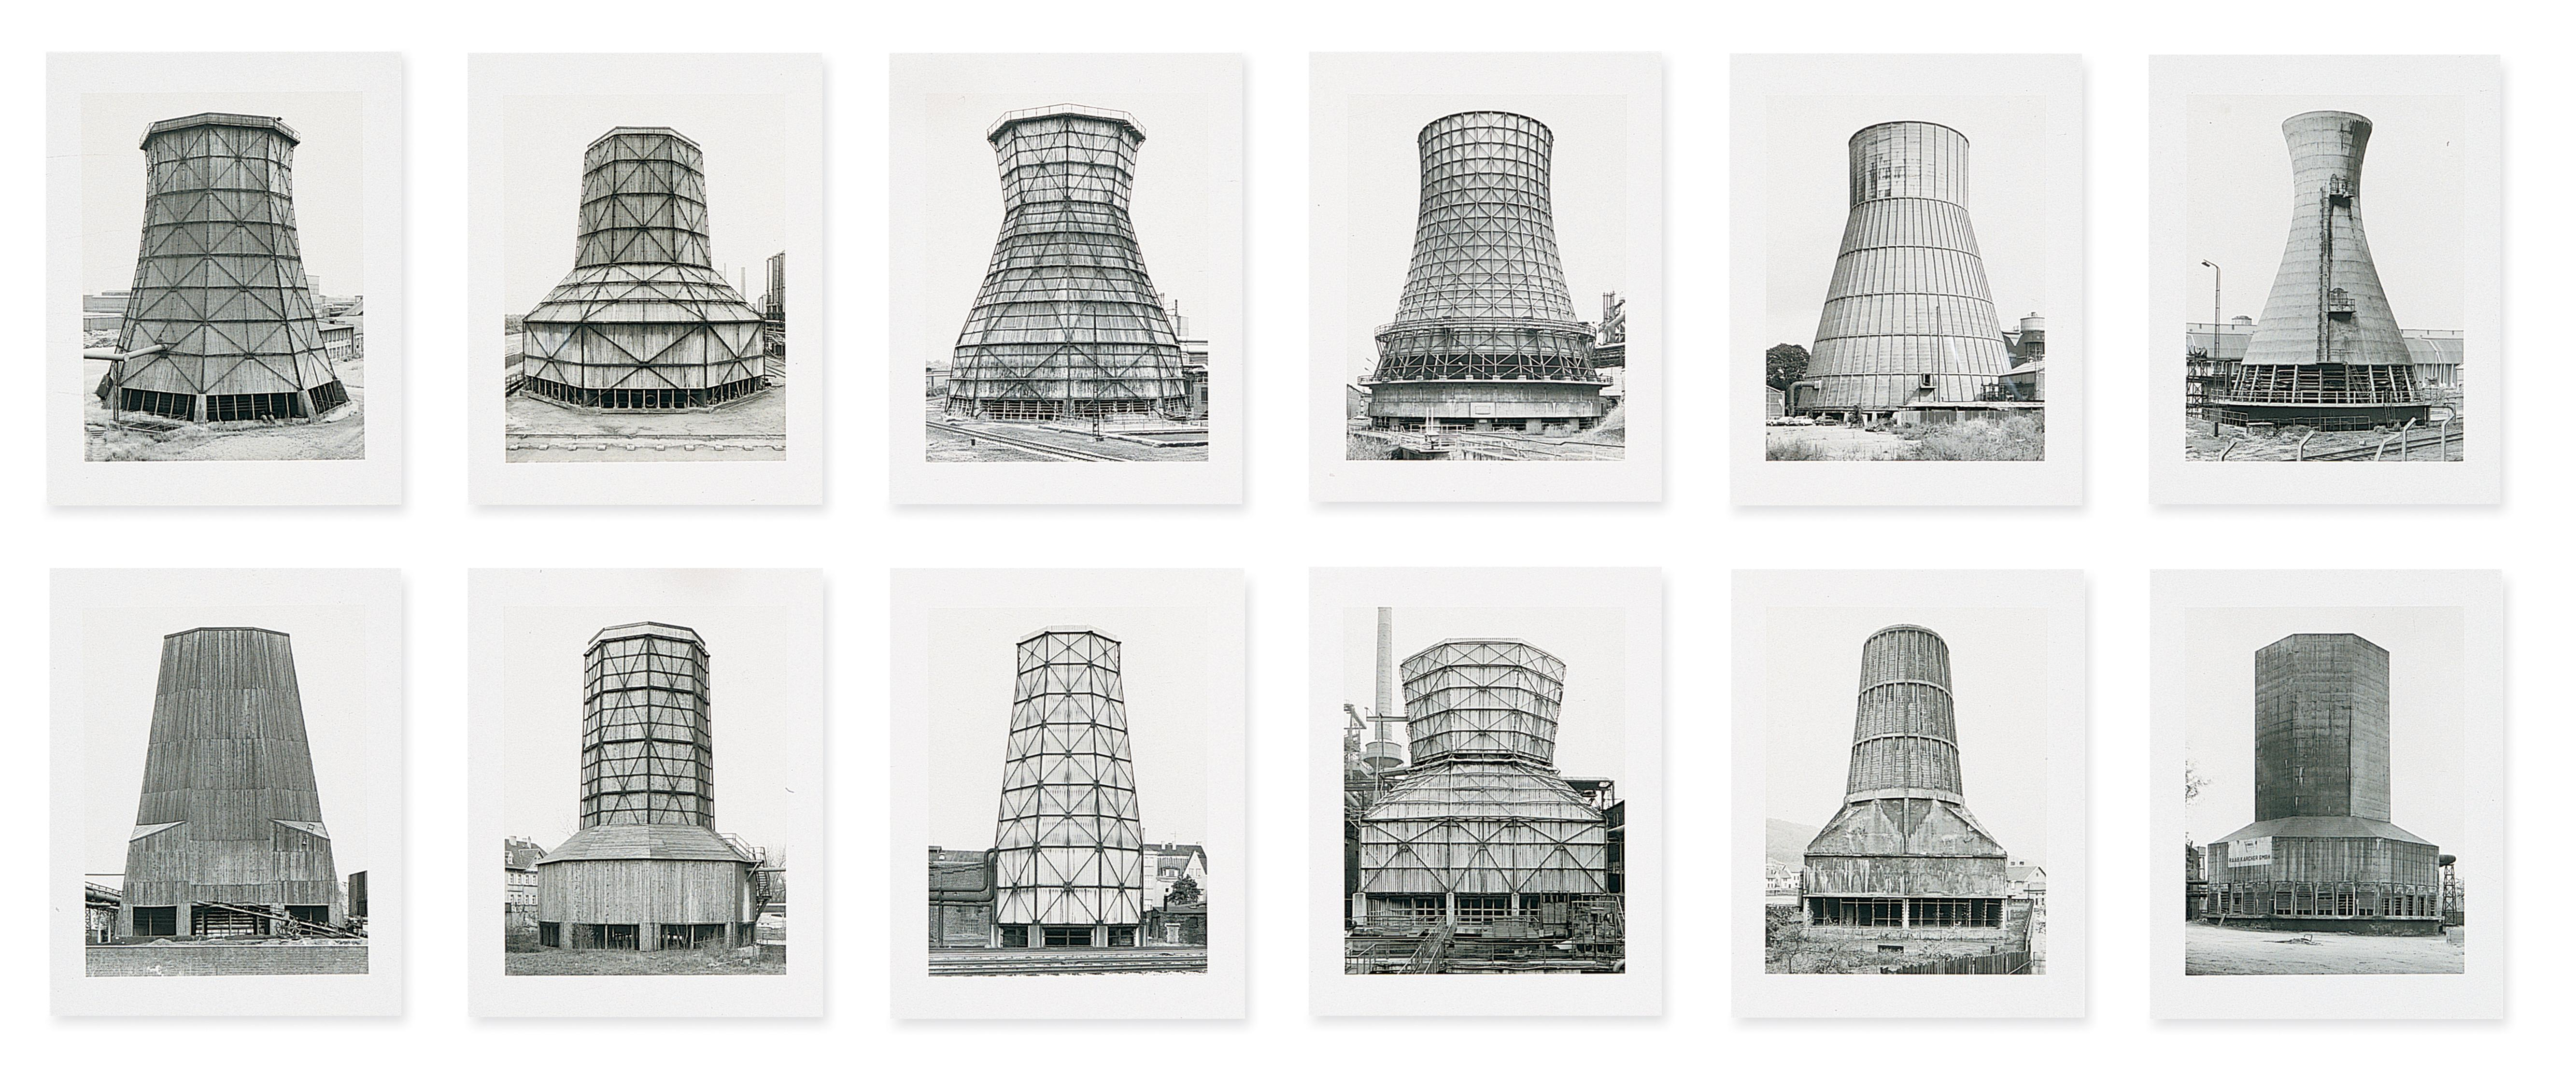 Black-and-white photographs of twelve cooling towers hung in two horizontal rows